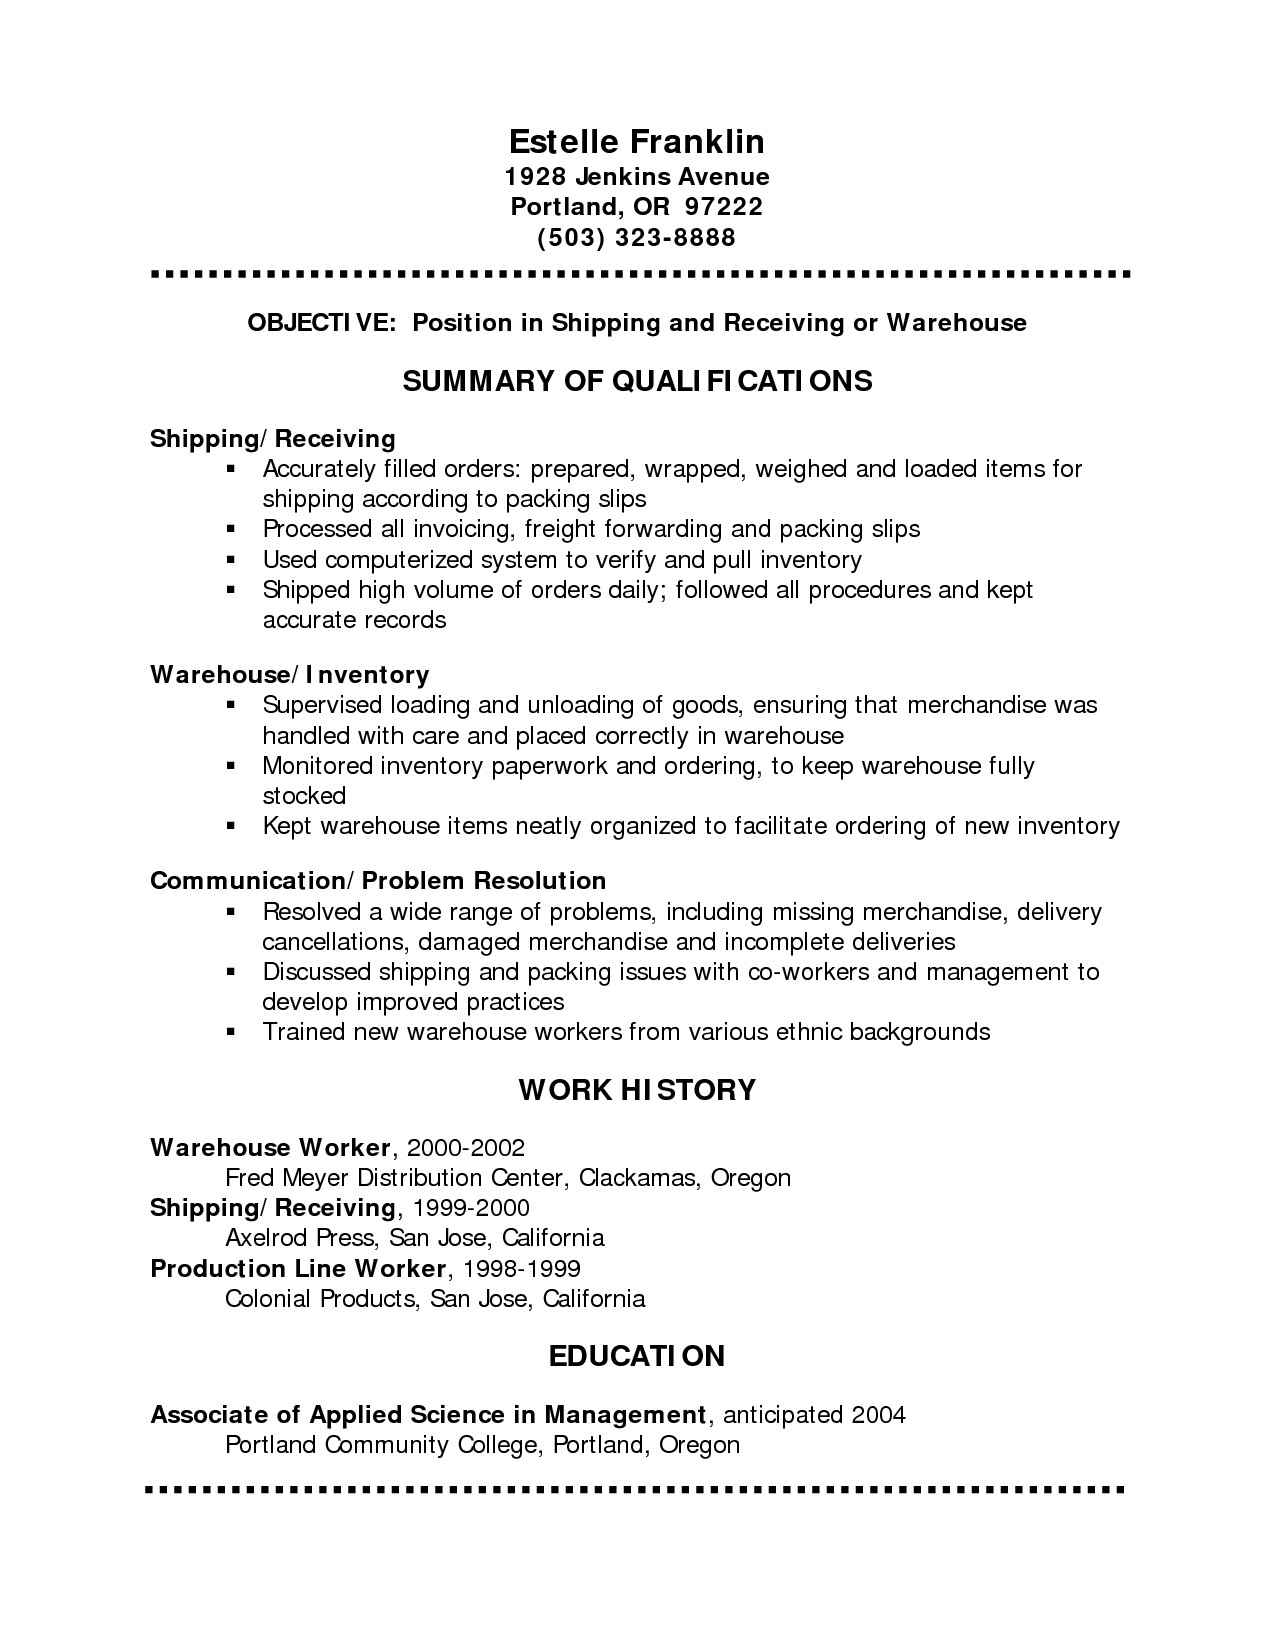 Chronological Resume Template Pdf - Sample Chronological Resume format Reference Sample Resume